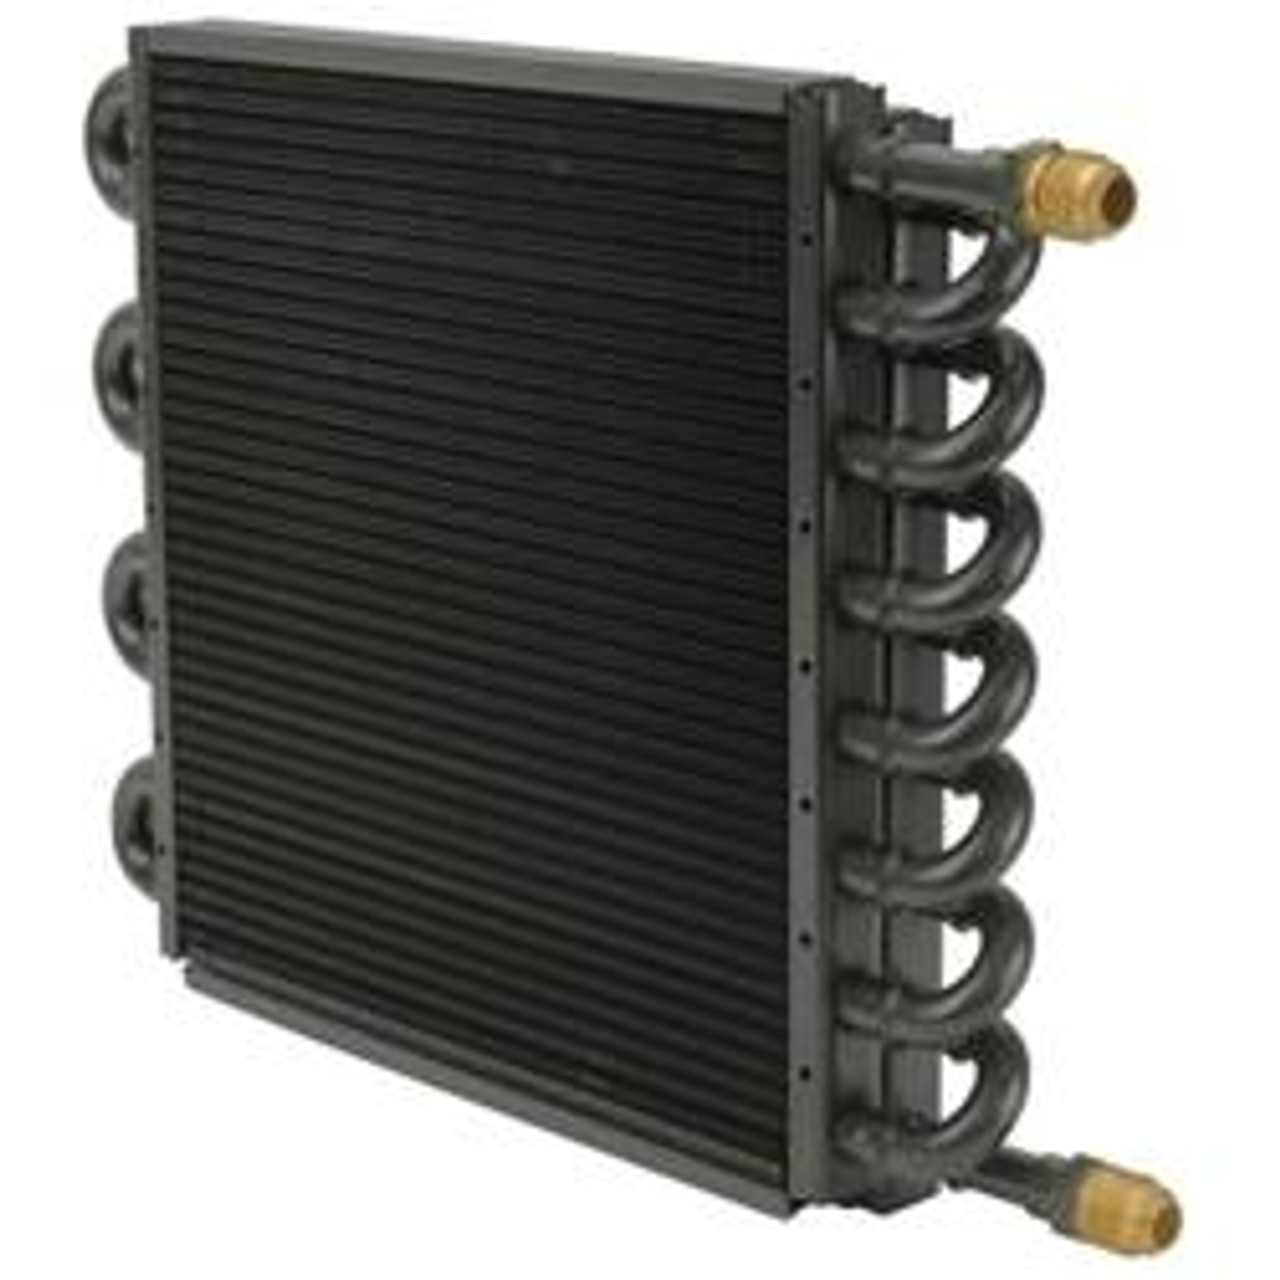 Replacement Oil Cooler Radiator for Sneed4Speed oil cooler kit